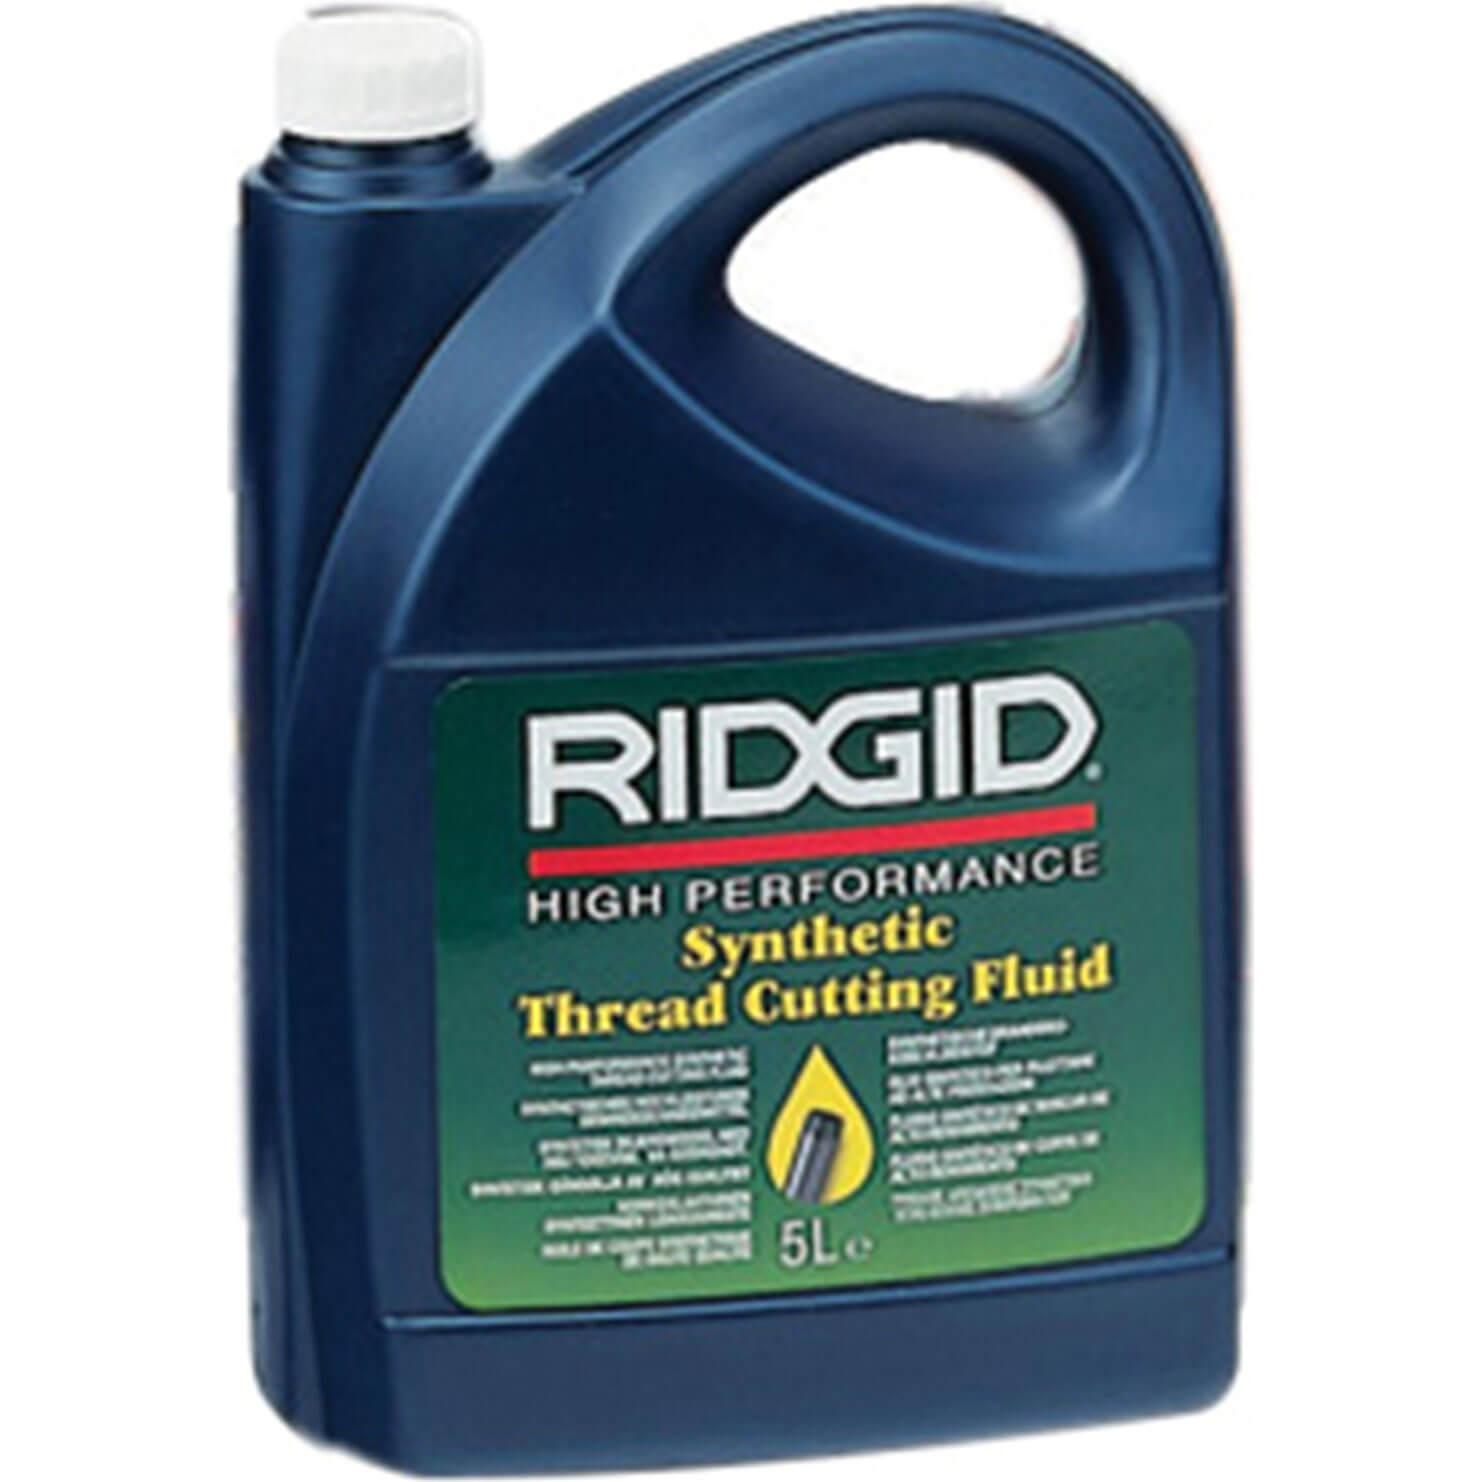 Image of Ridgid Synthetic Thread Cutting Oil 5l